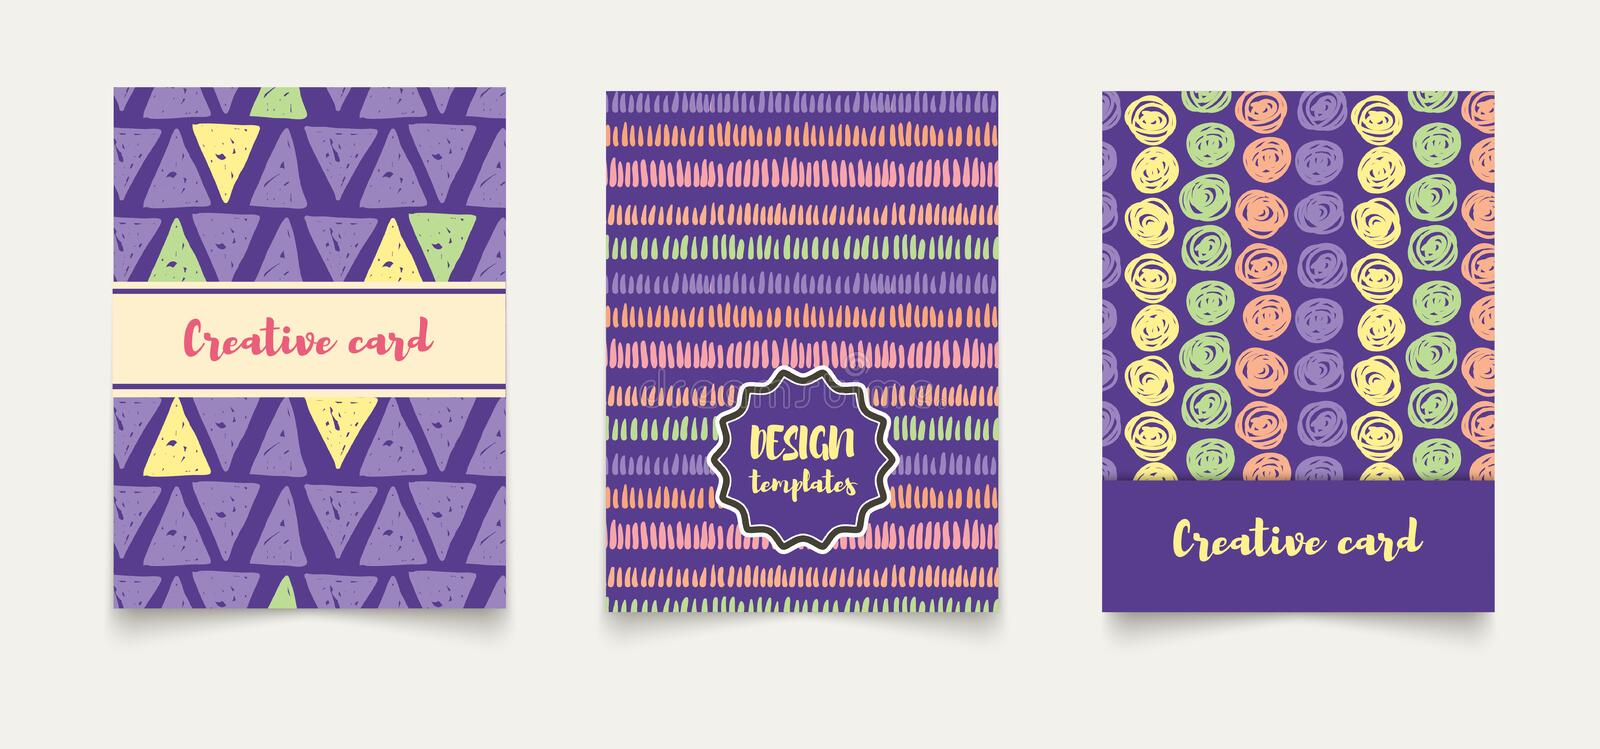 Template ethnic creative cards. royalty free illustration